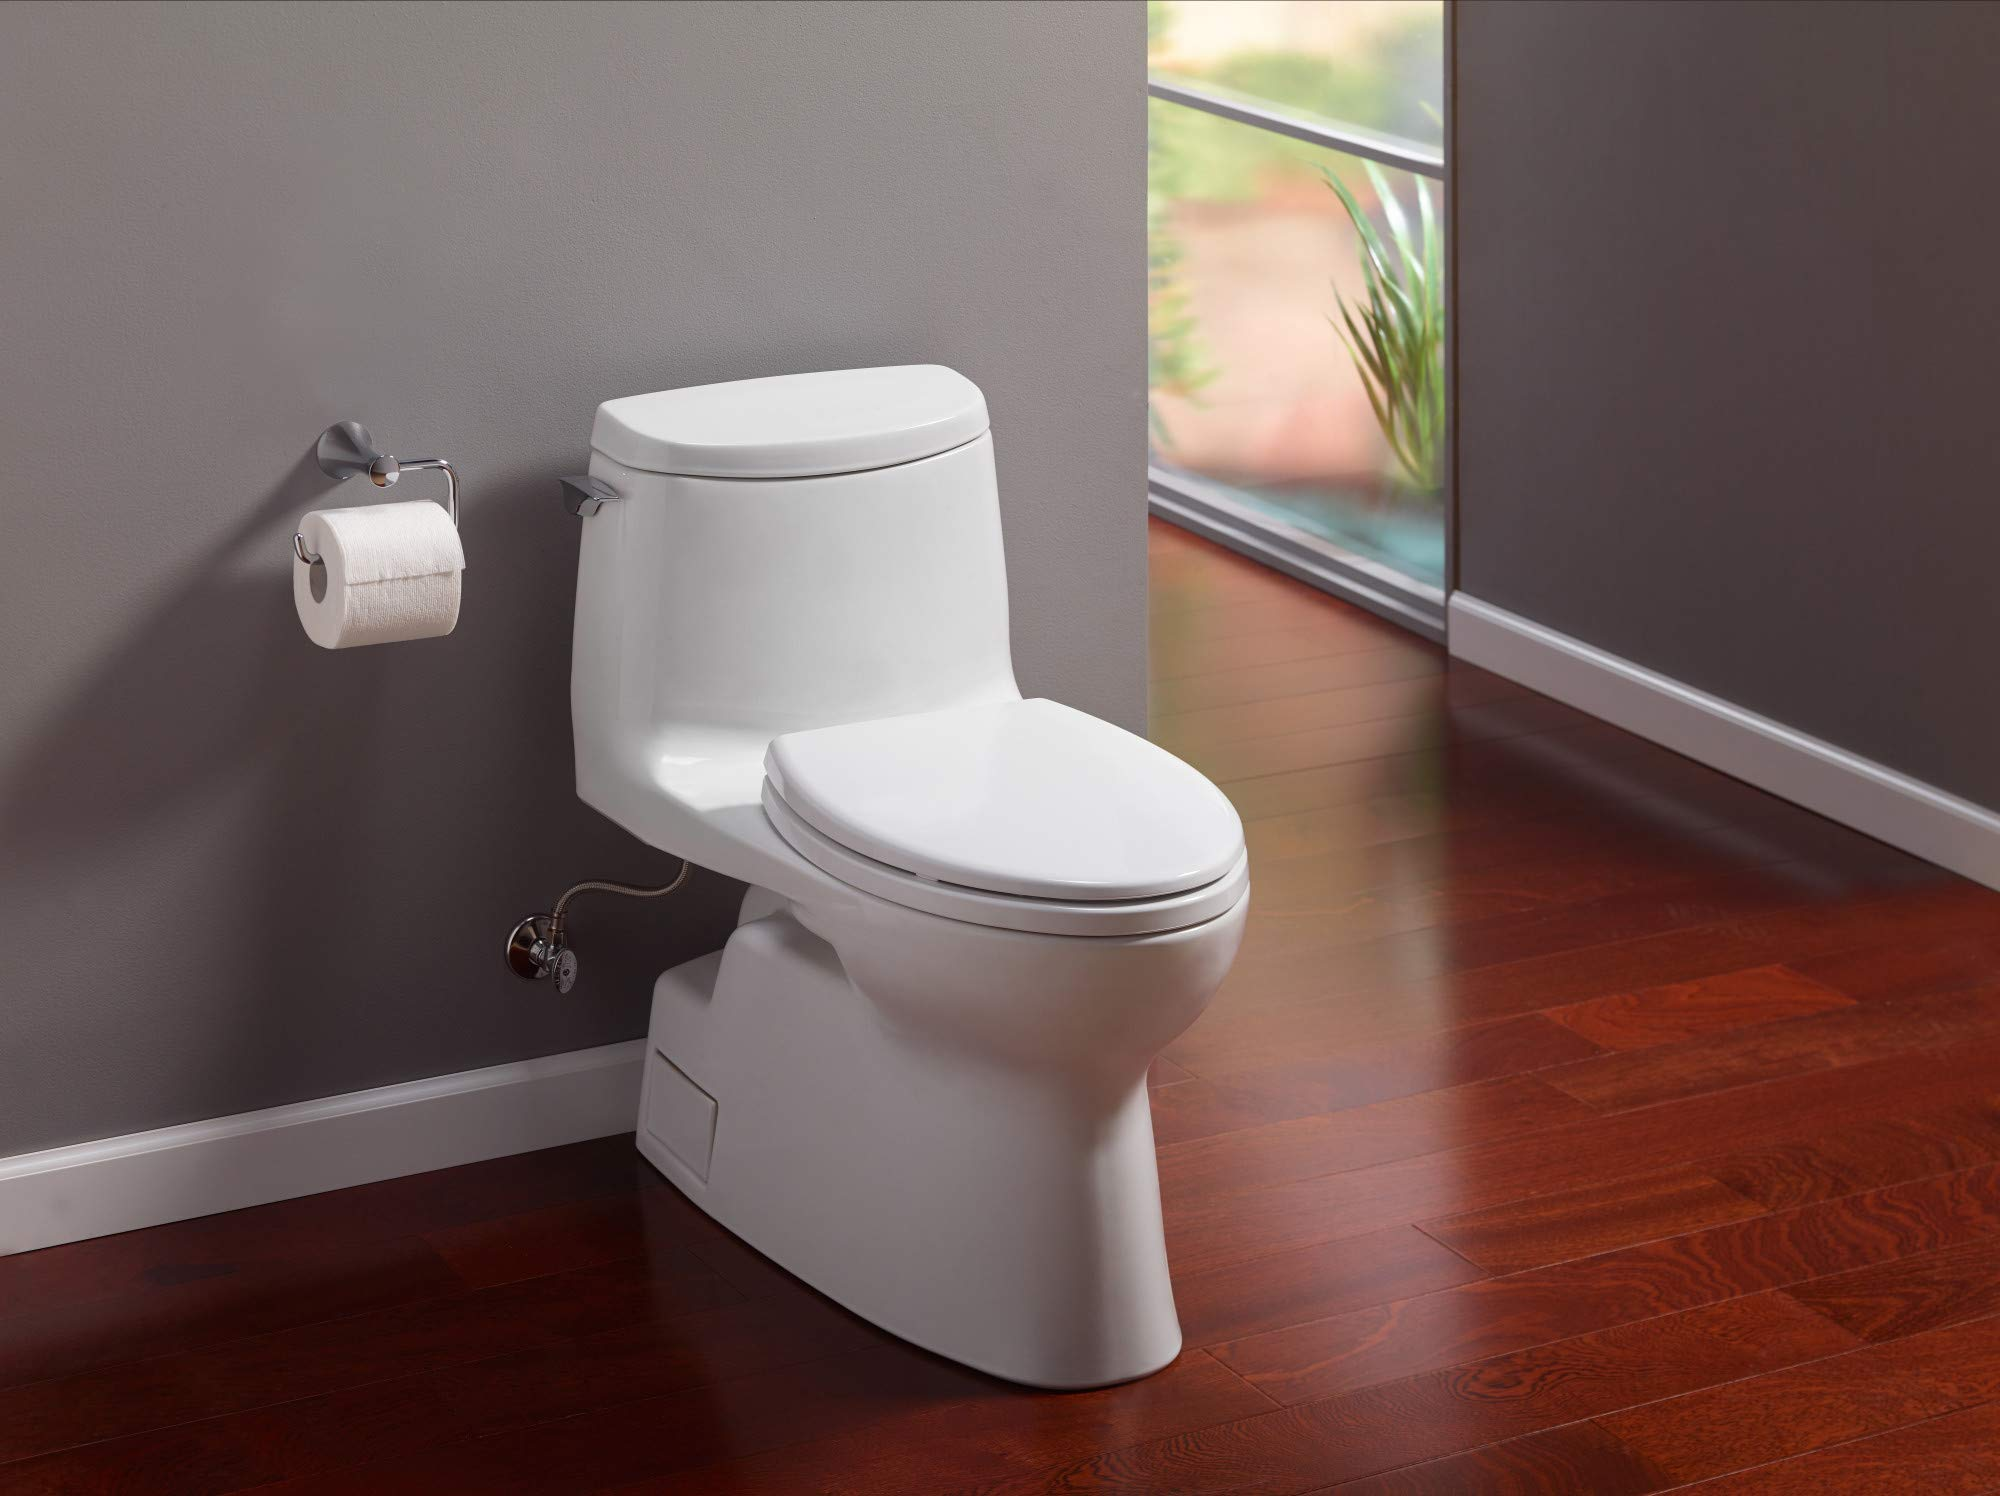 Toto Carlyle II vs Toto Vespin II – Which is the Better Toilet?